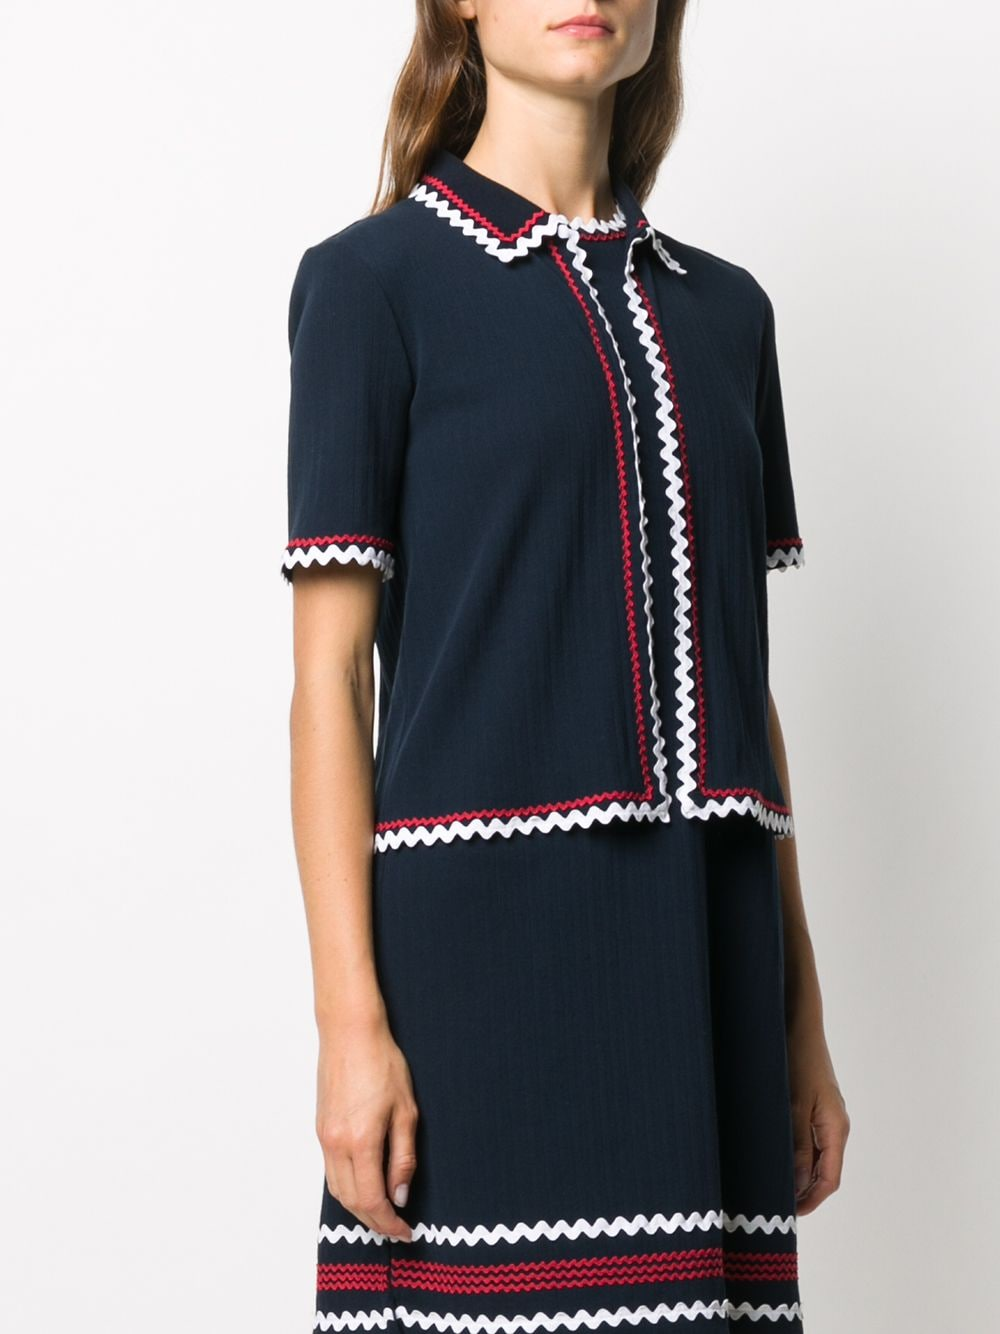 THOM BROWNE WOMEN SHORT SLEEVE CARDIGAN W/ CRICKET ZIG ZAG TRIM IN HIGH TWIST PLEATED RIB